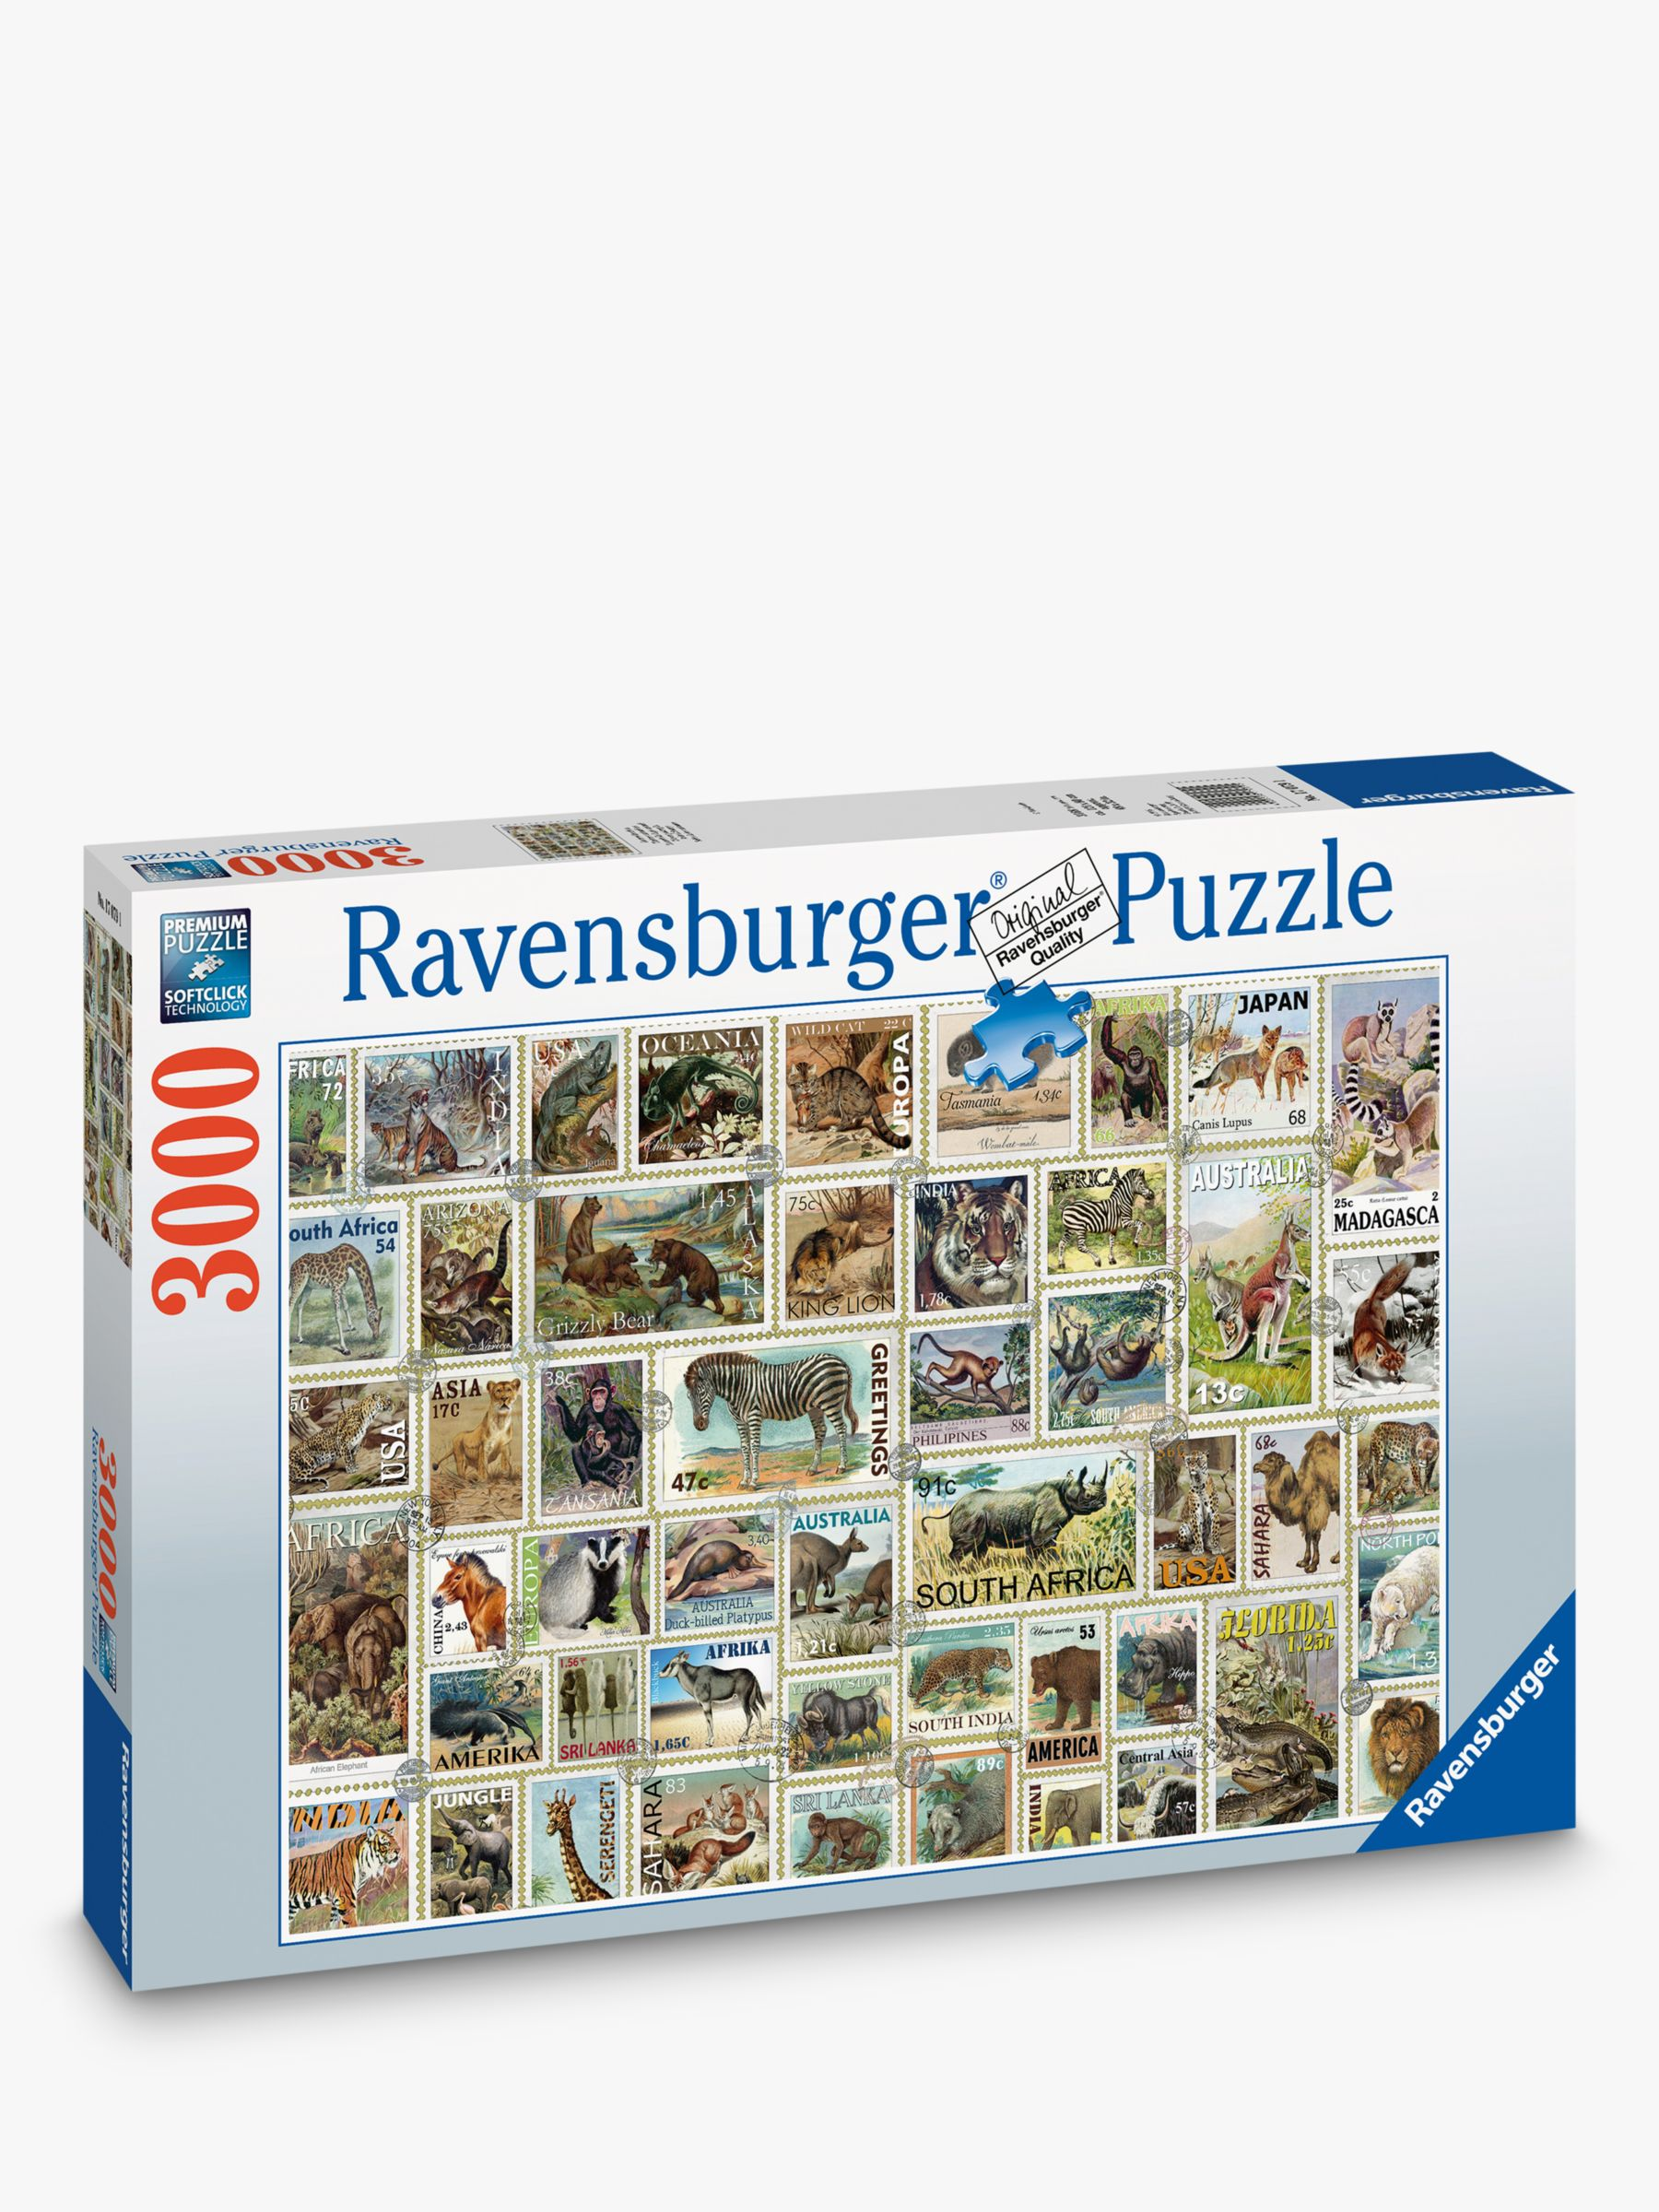 Ravensburger Ravensburger Animal Stamps Jigsaw Puzzle, 3000 Pieces